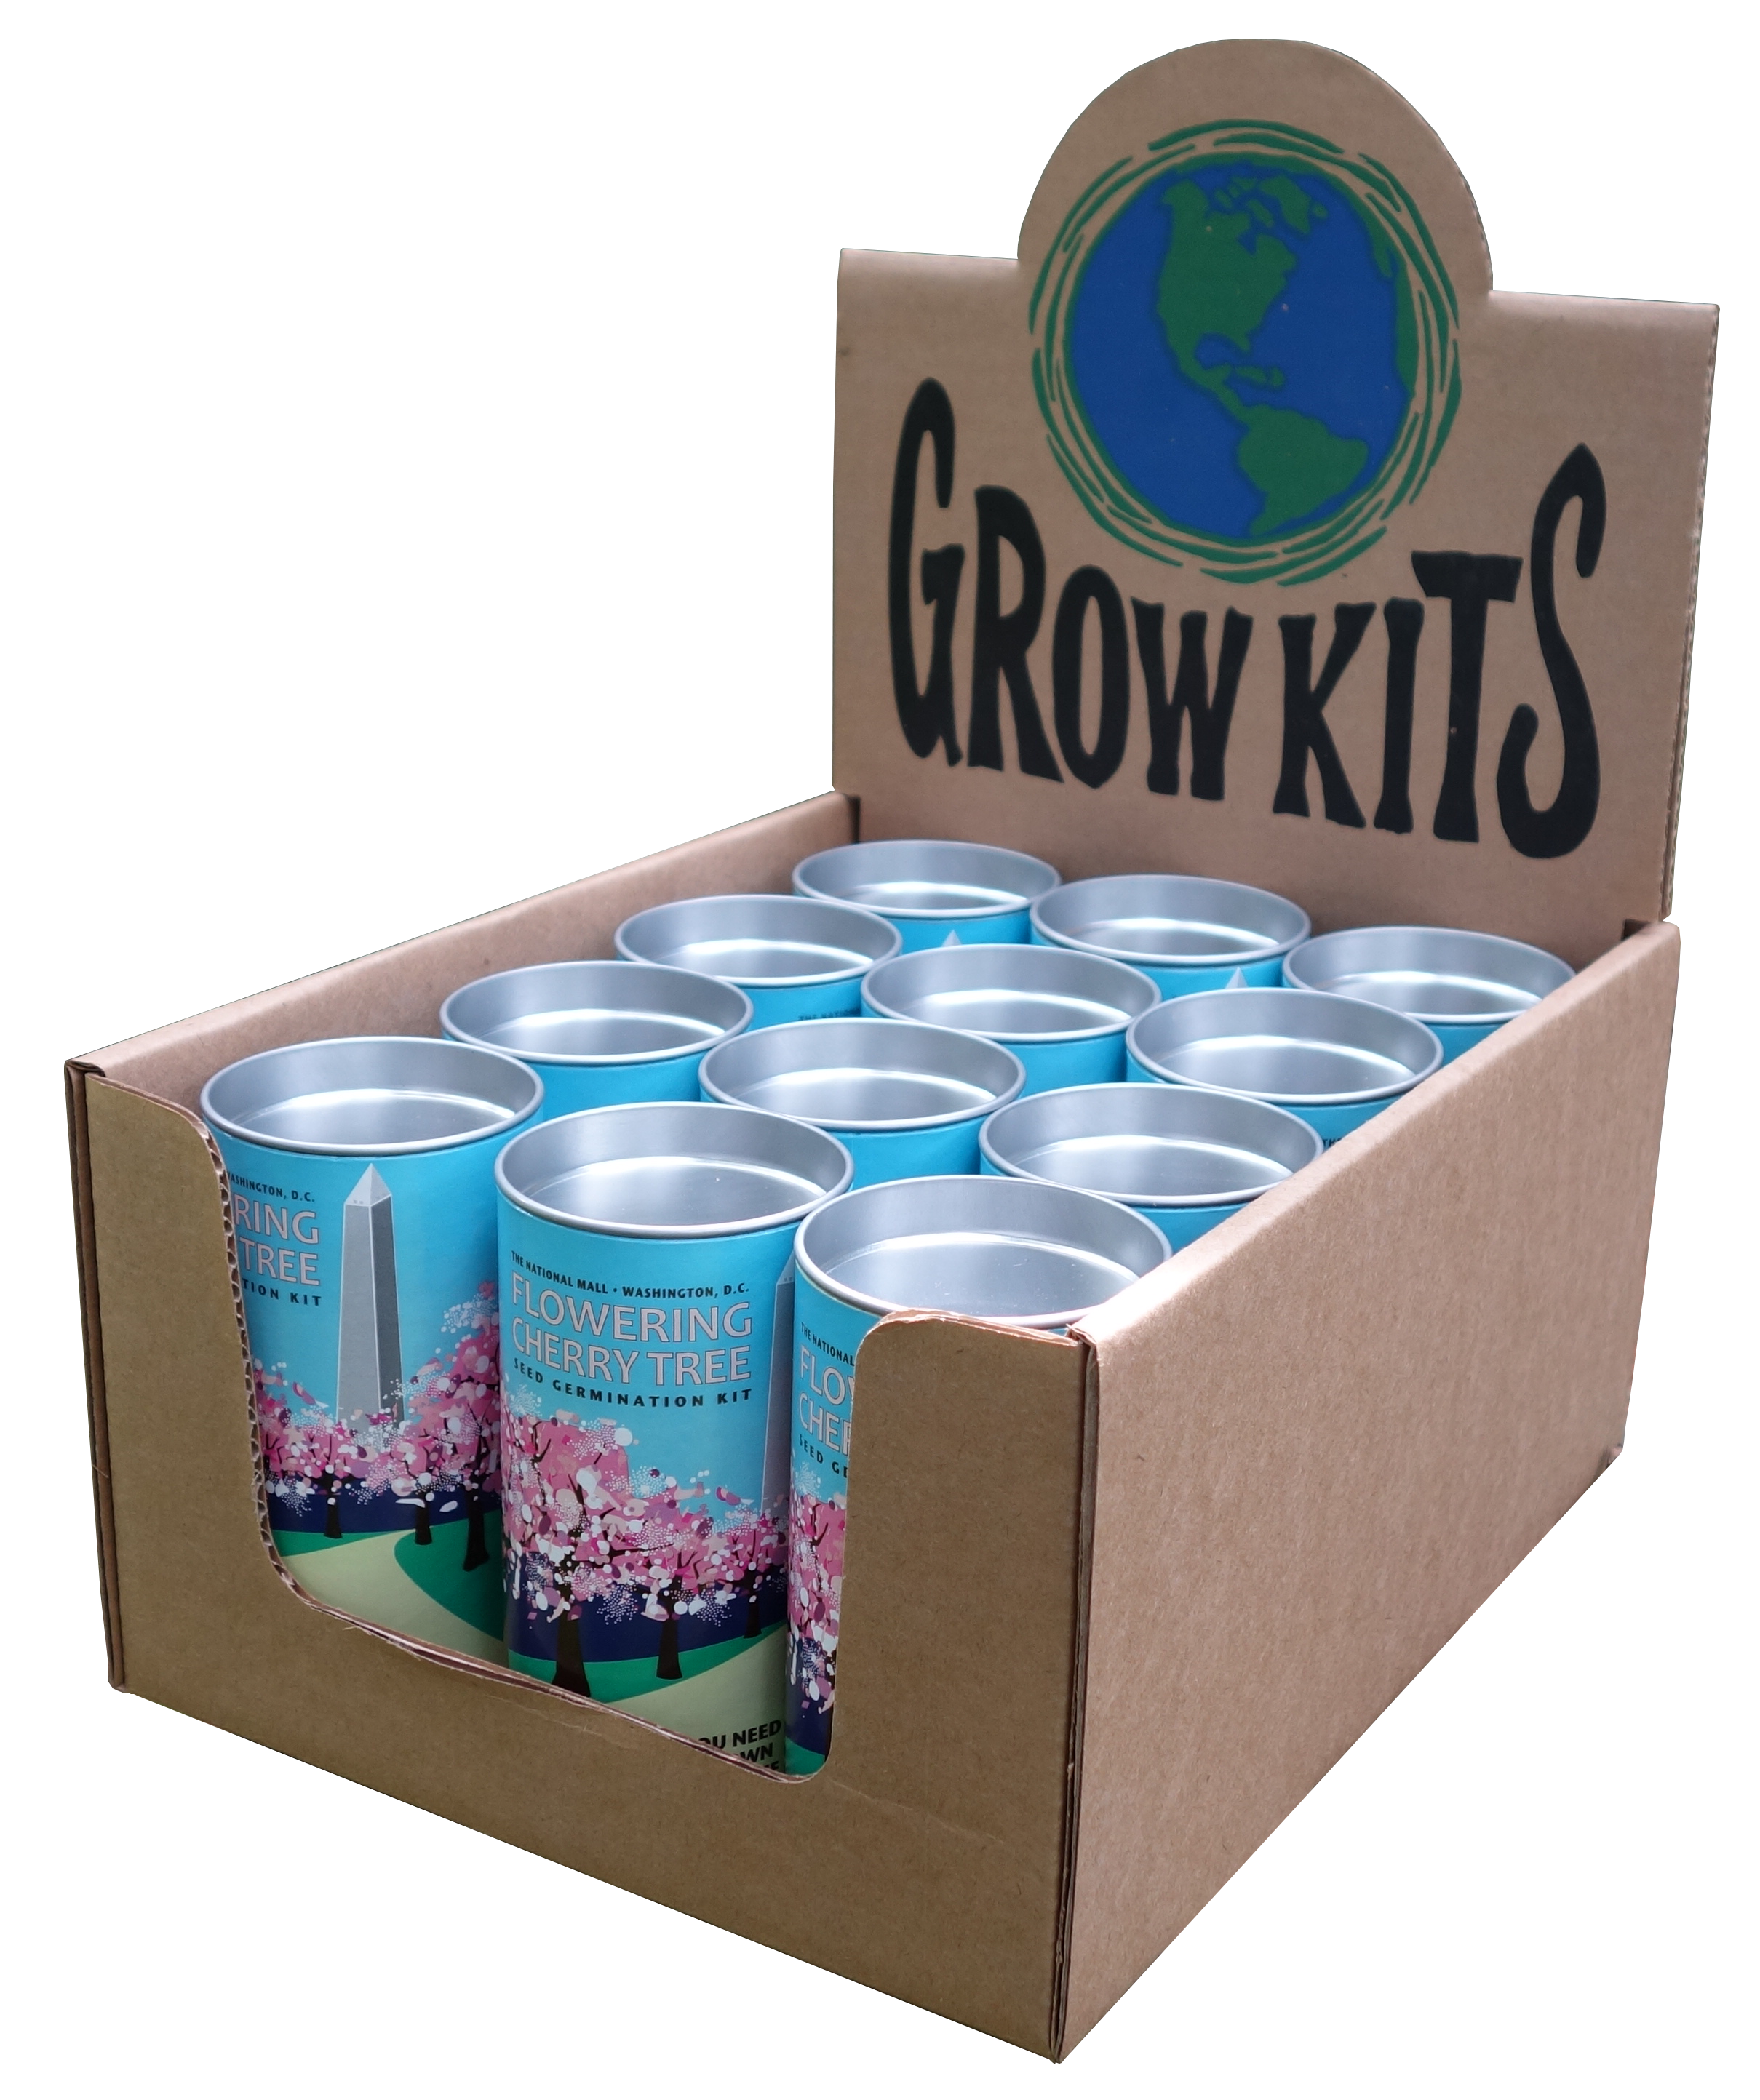 Jonsteen-Grow-Kit-12-Pack-Display